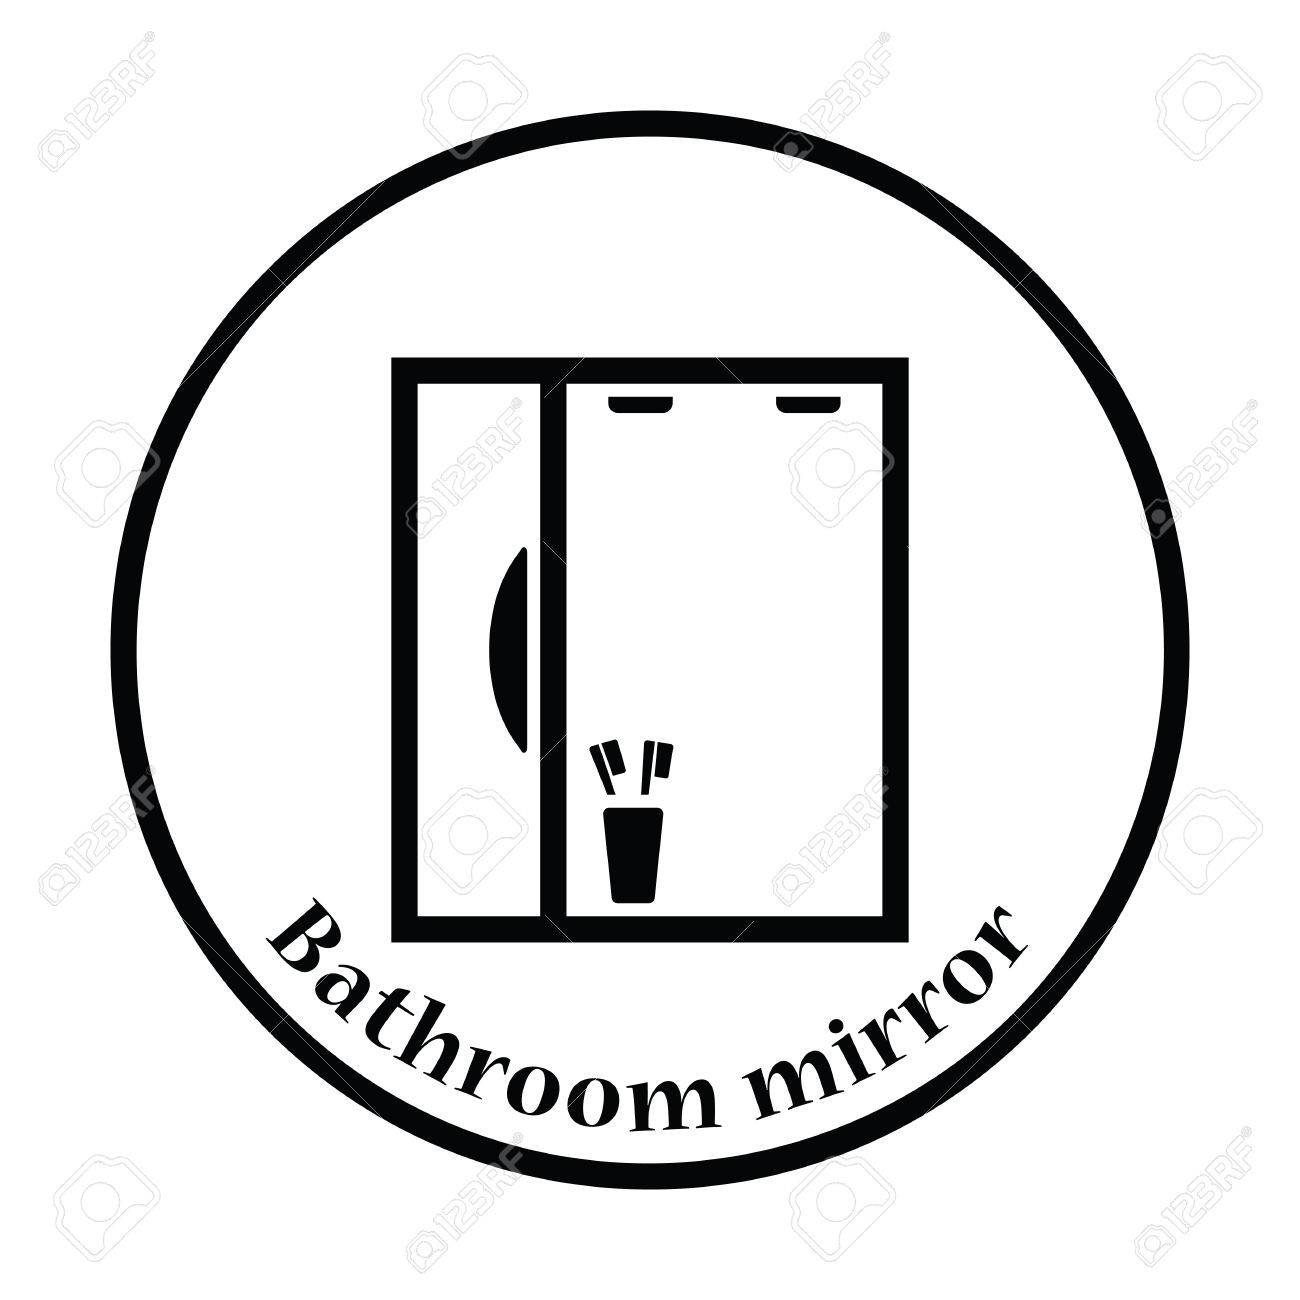 Amazing Small Corner Mirror Bathroom Cabinet Thick Walk In Shower Small Bathroom Square Bath Tub Mat Towel Delta Bathtub Faucet Removal Youthful Can You Have A Spa Bath When Your Pregnant WhiteBathroom Direction According To Vastu Bathroom Mirror Icon. Thin Circle Design. Vector Illustration ..